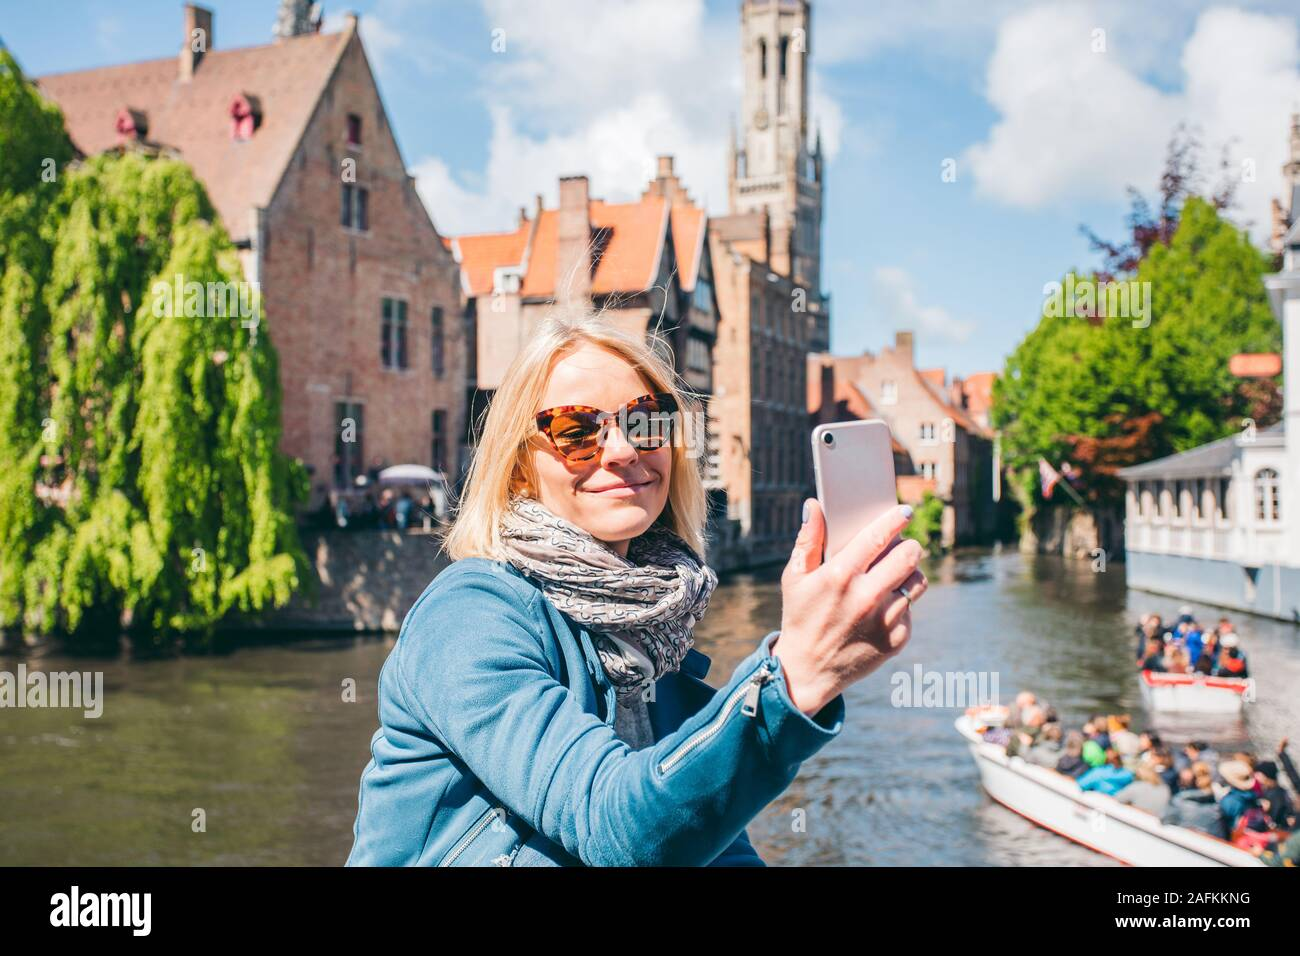 Beautiful Young Girl Takes Selfie Photo On The Background Of The Famous Tourist Destination With A Canal In Bruges Belgium Stock Photo Alamy